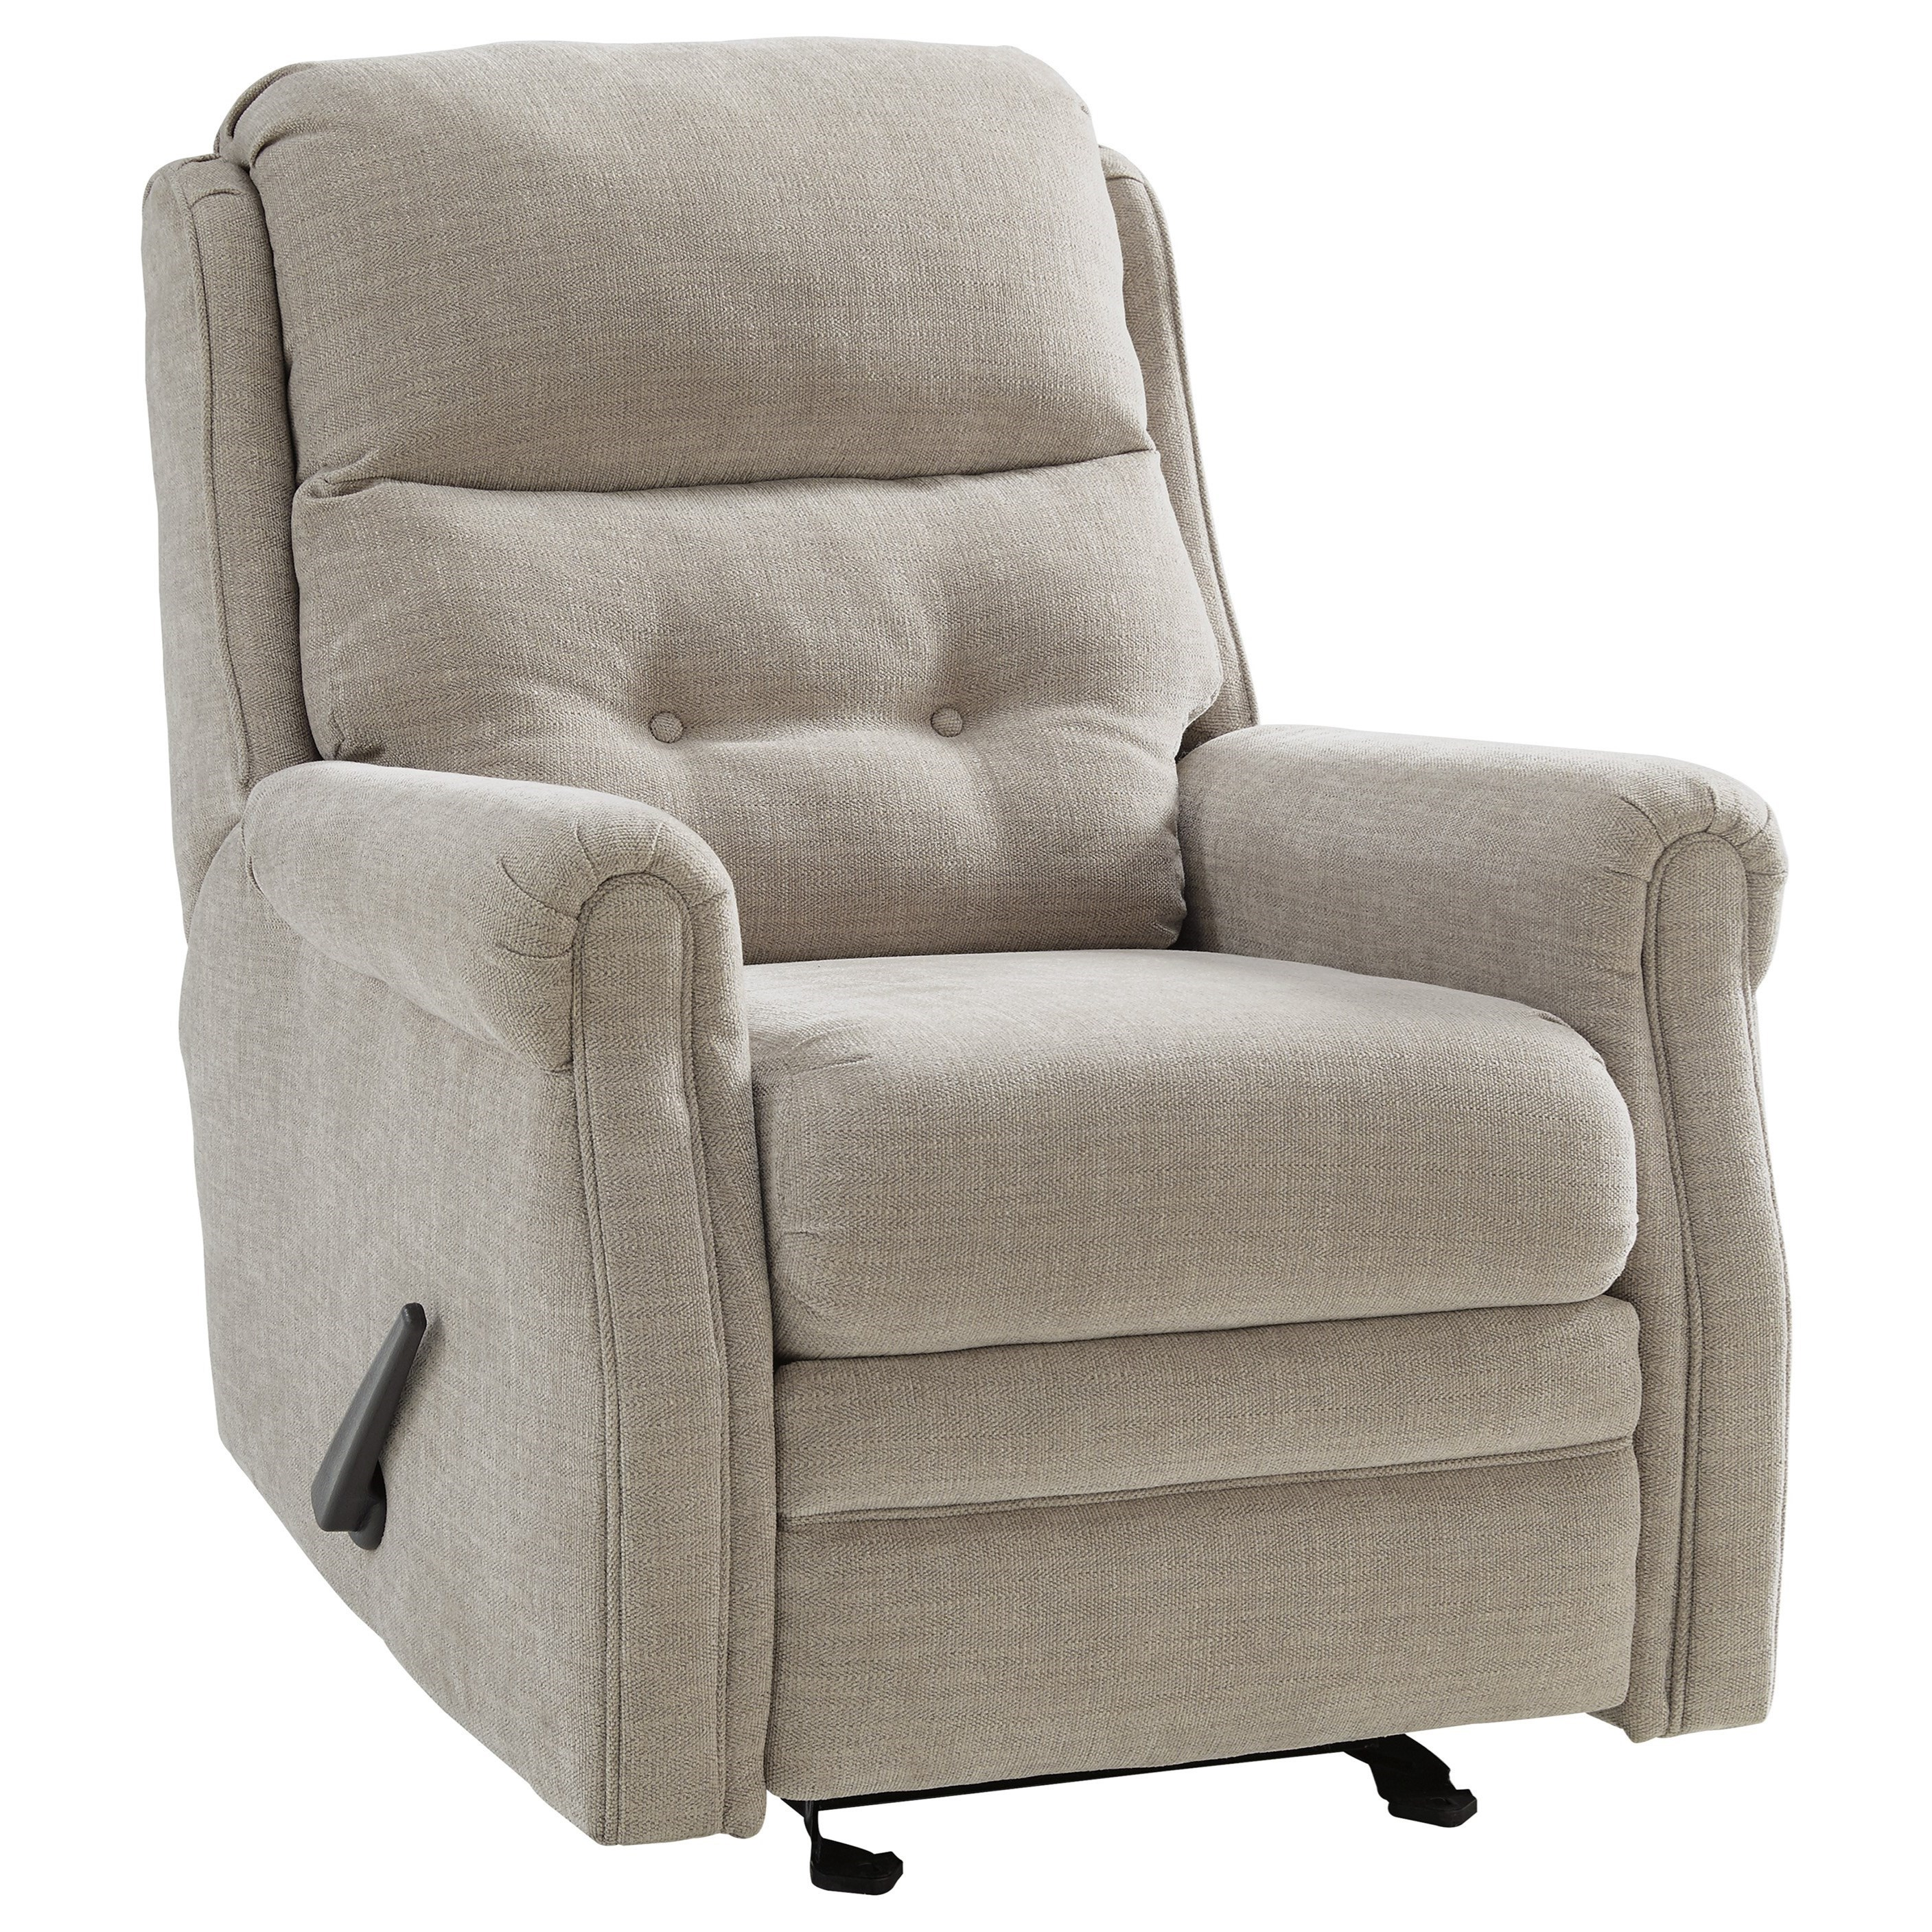 Penzberg Glider Recliner by Signature Design by Ashley at Beck's Furniture